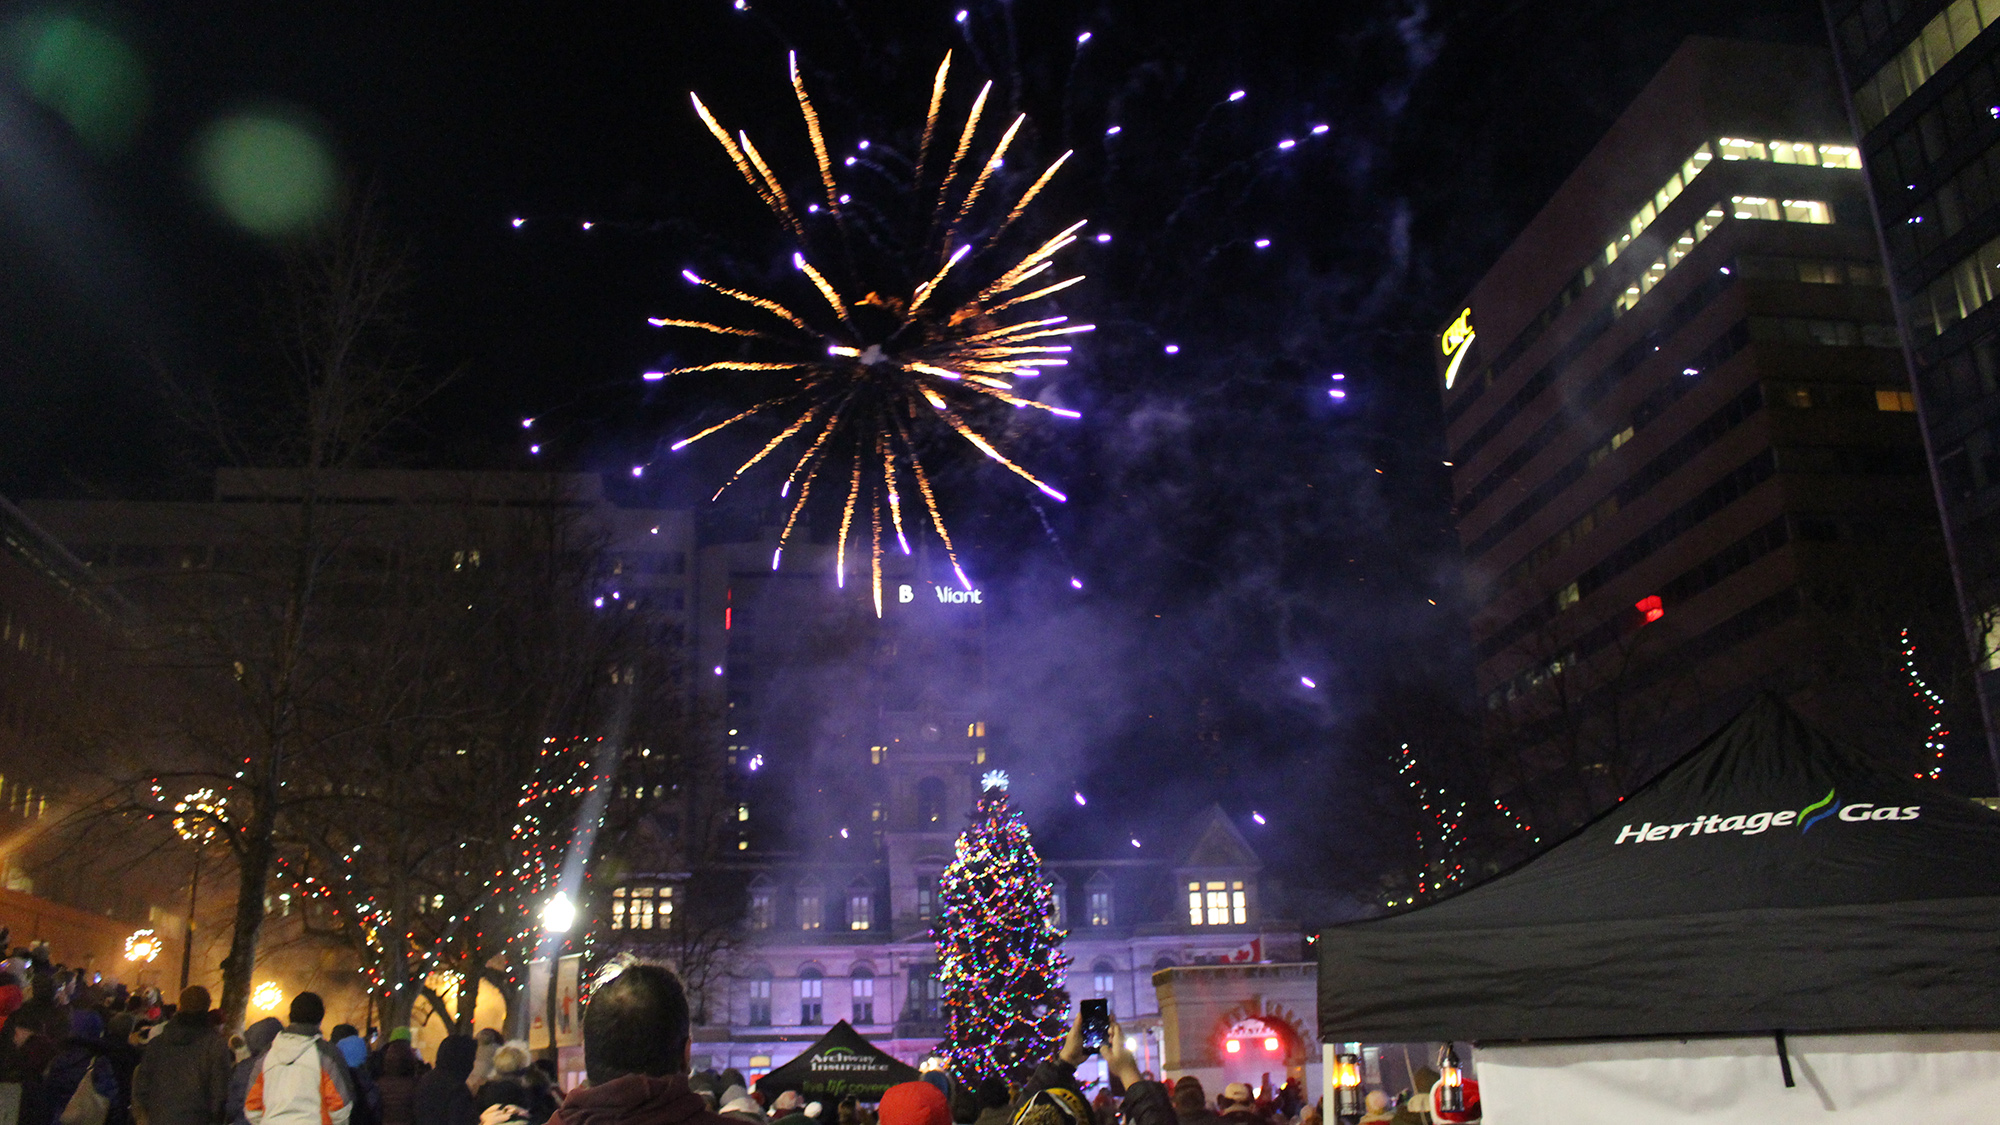 Hundreds watch the fireworks display at the annual Halifax Christmas tree lighting.